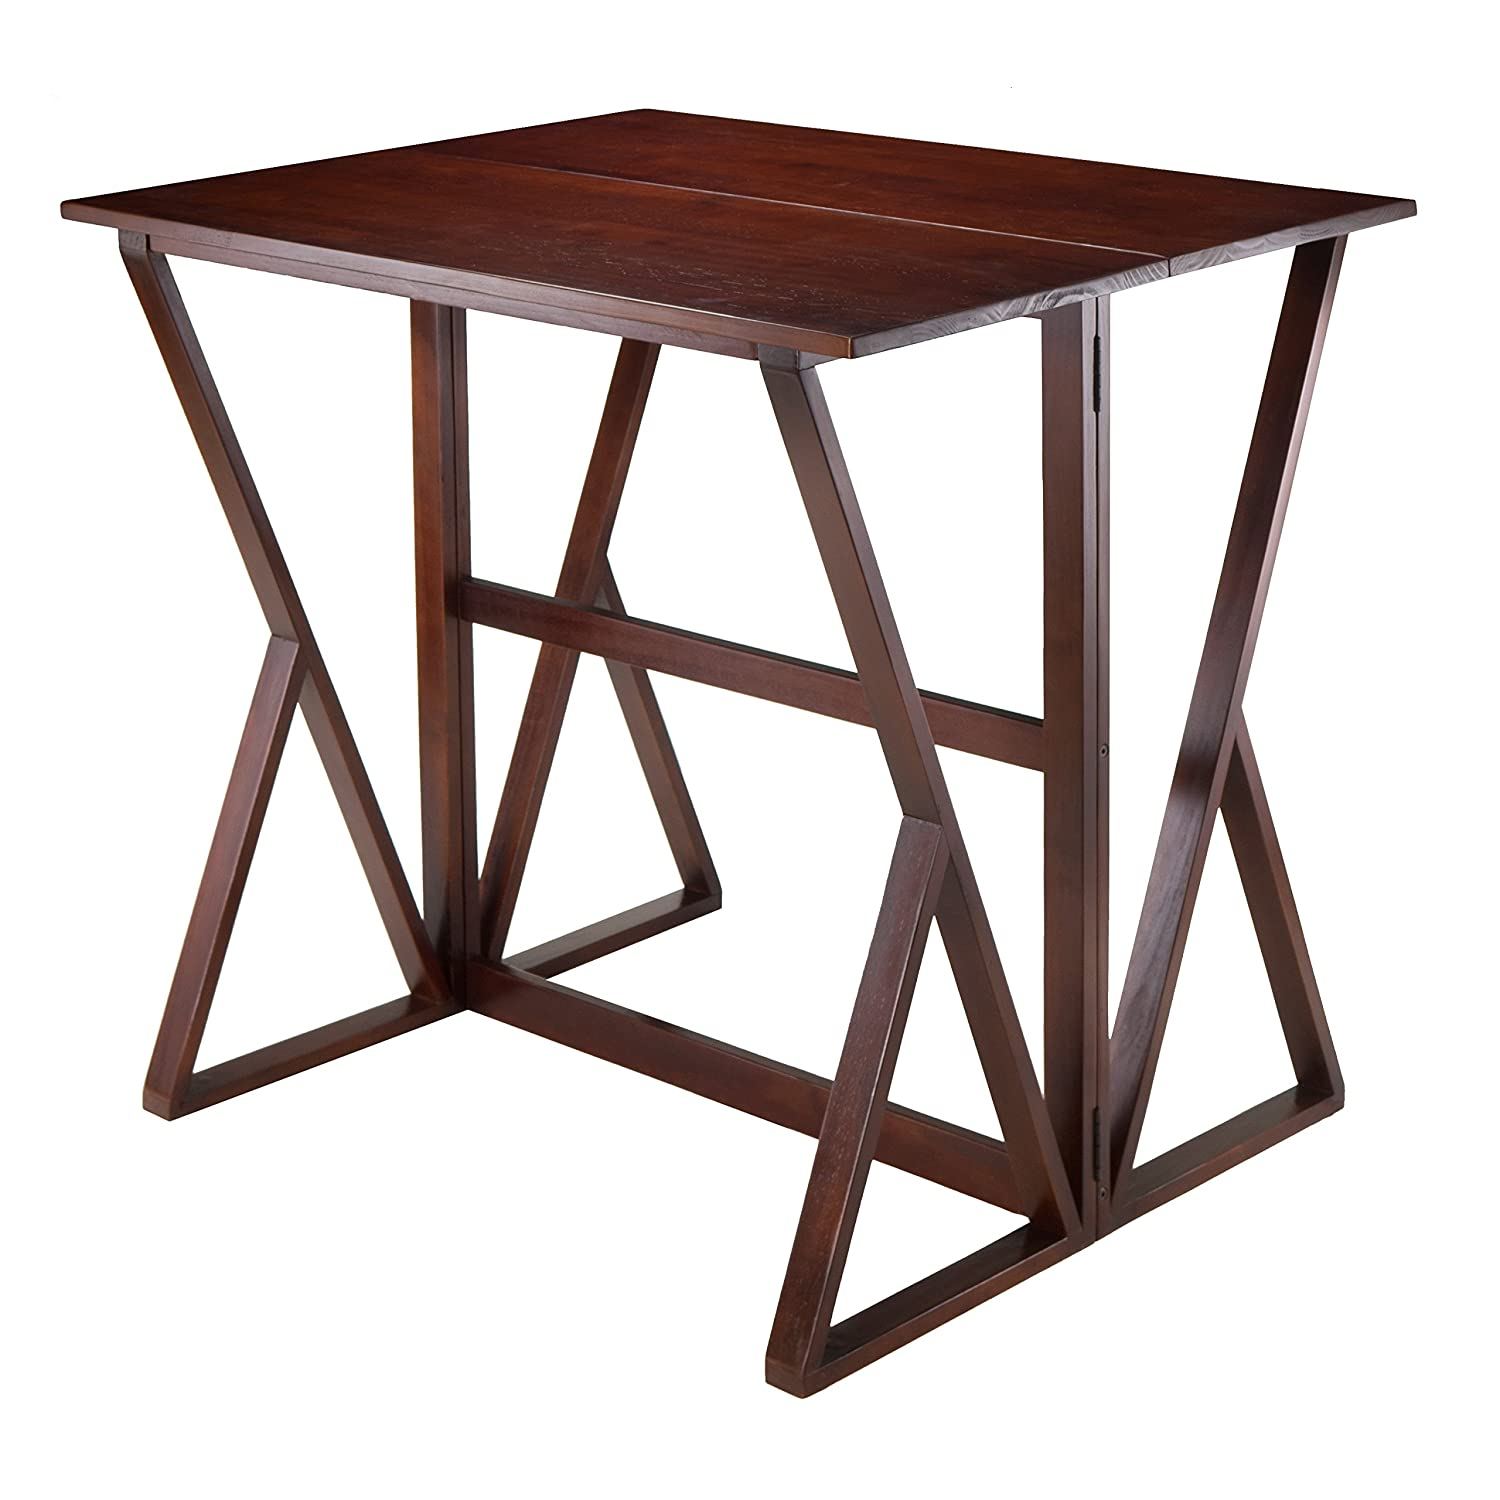 Winsome Wood Harrington Drop Leaf High Table Winsome Trading Inc. 94139